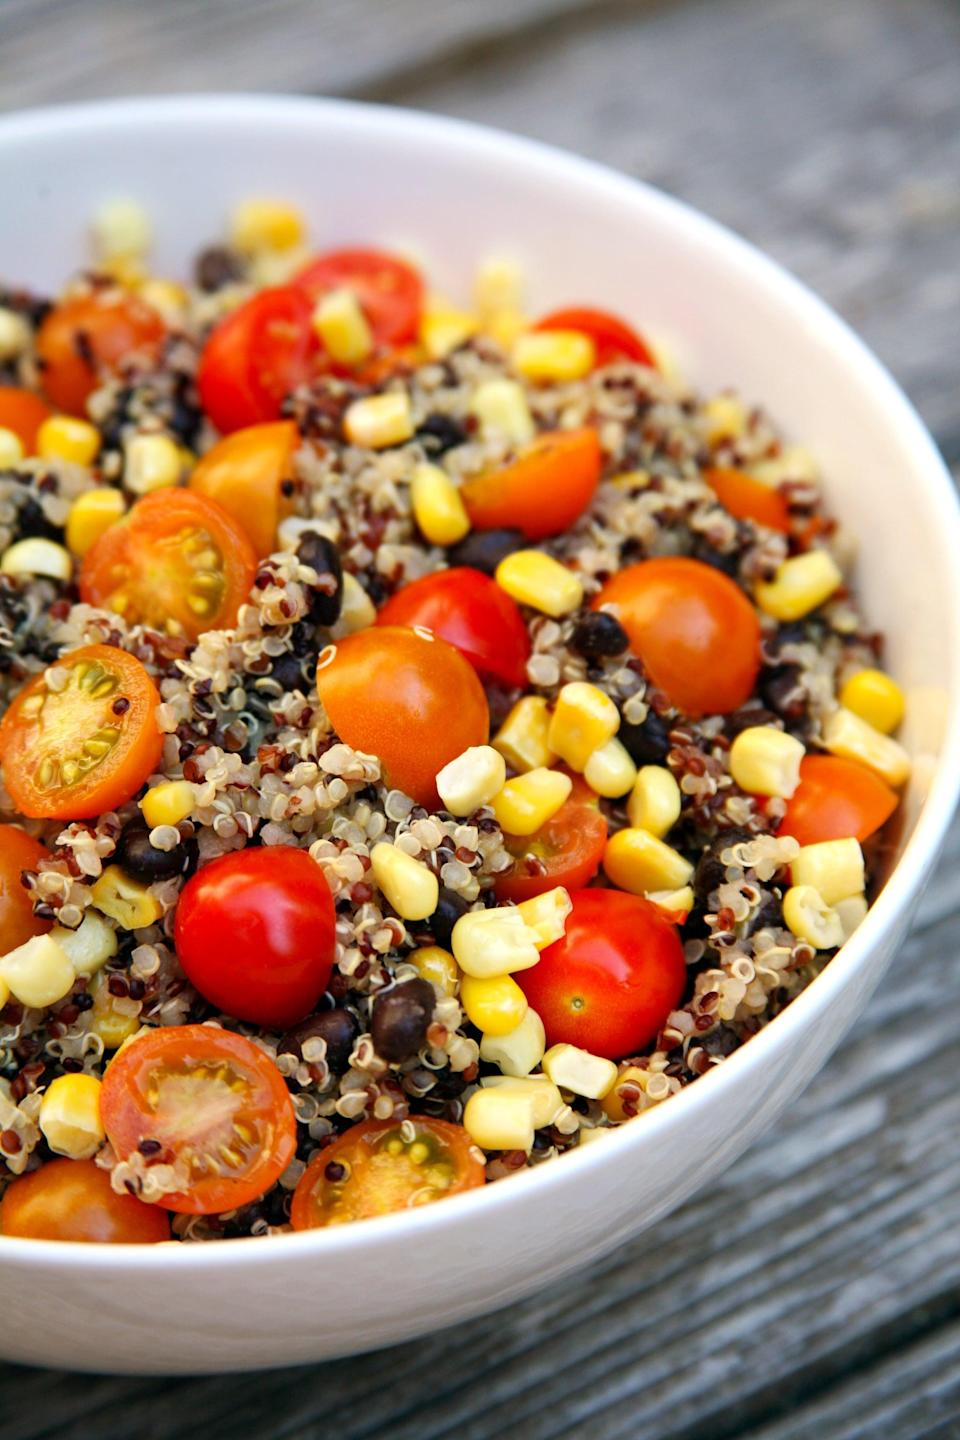 "<p>Whether you make extra for dinner and pack leftovers like soup, a crockpot meal, or this <a href=""https://www.popsugar.com/fitness/Quinoa-Black-Bean-Corn-Tomato-Salad-42299018"" class=""link rapid-noclick-resp"" rel=""nofollow noopener"" target=""_blank"" data-ylk=""slk:quinoa and black bean salad"">quinoa and black bean salad</a>, or you <a href=""https://www.popsugar.com/fitness/How-Make-Week-Mason-Jar-Salads-40885544"" class=""link rapid-noclick-resp"" rel=""nofollow noopener"" target=""_blank"" data-ylk=""slk:make five salads on Sunday night"">make five salads on Sunday night</a>, packing lunch ahead of time is less expensive than ordering out, healthier, and a great way to keep tabs on ingredients and portion sizes.</p>"